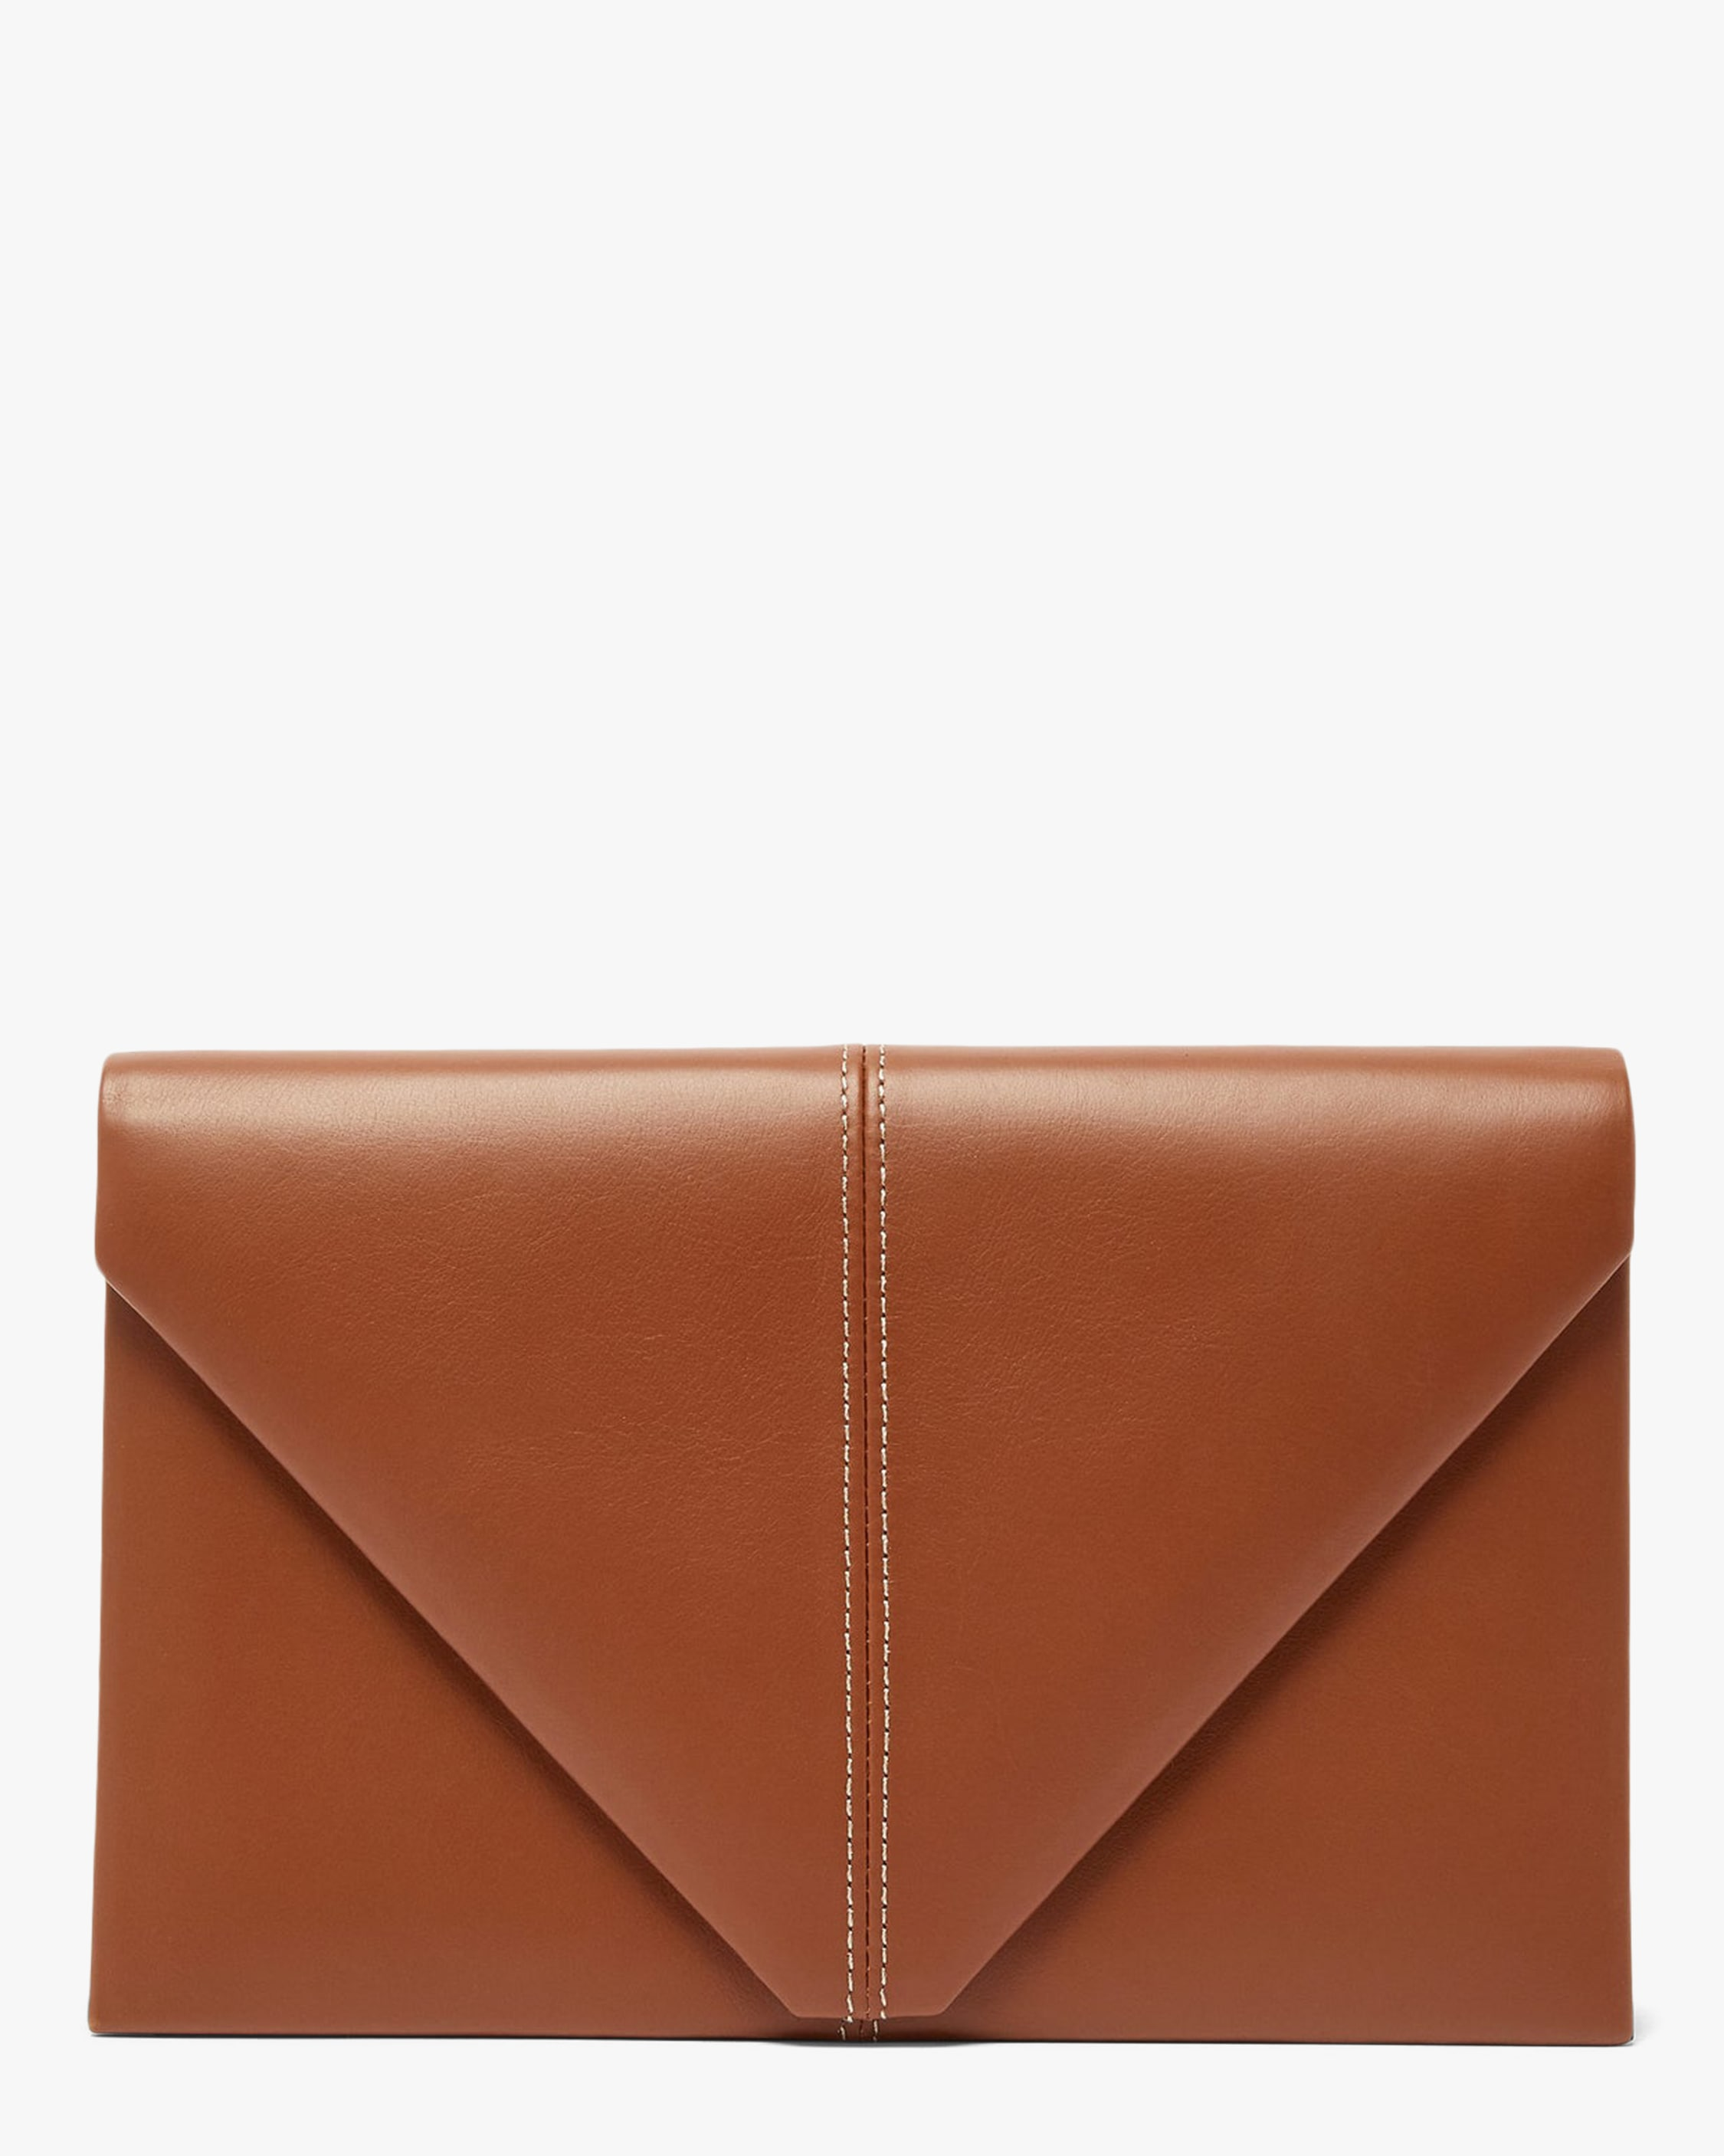 Hunting Season LEATHER & SUEDE ENVELOPE CLUTCH